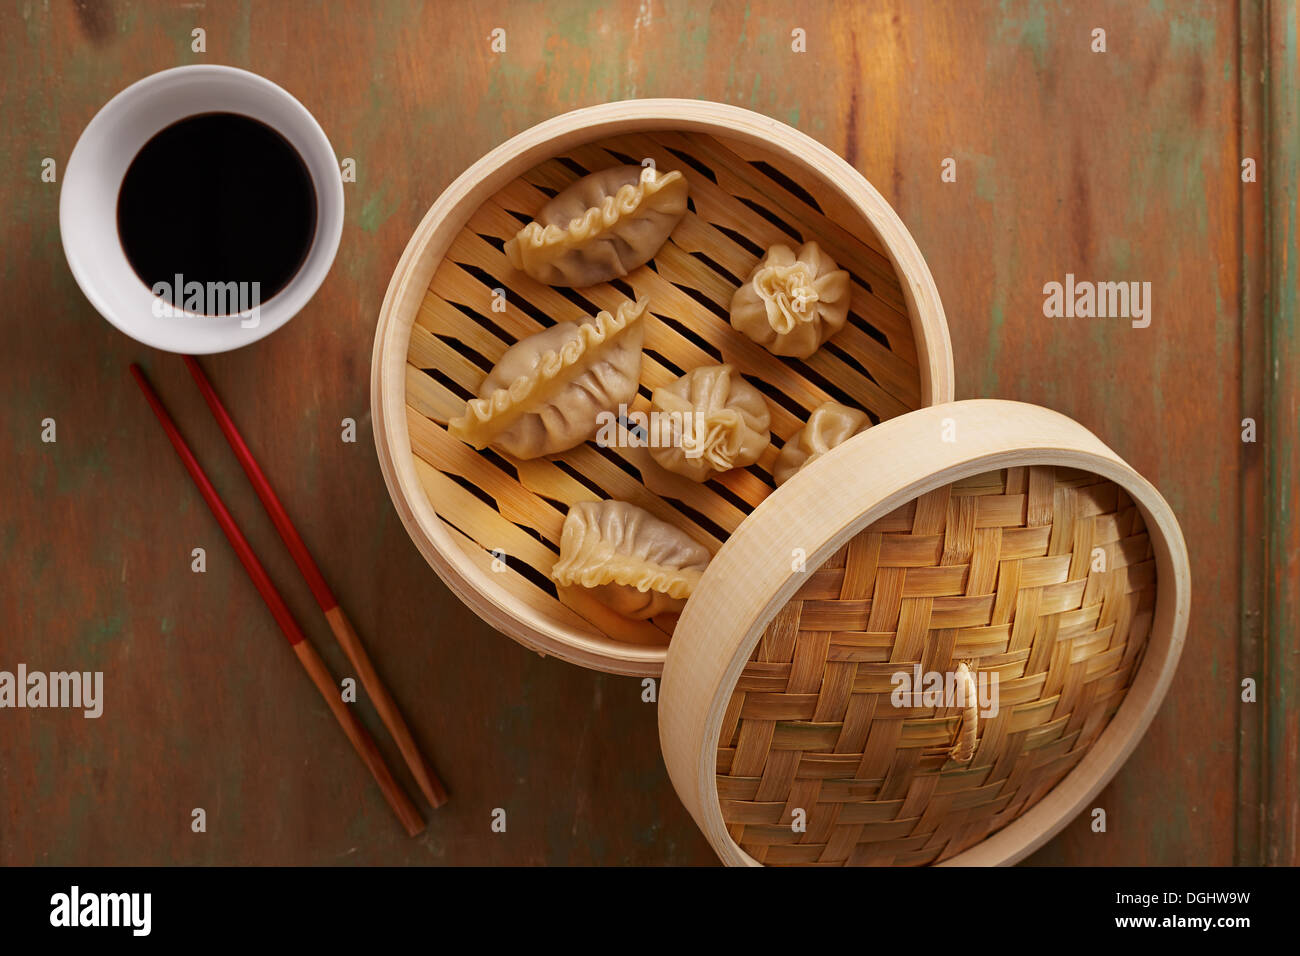 Homemade dim-sum asian dumplings on a traditional bamboo steamer - Stock Image